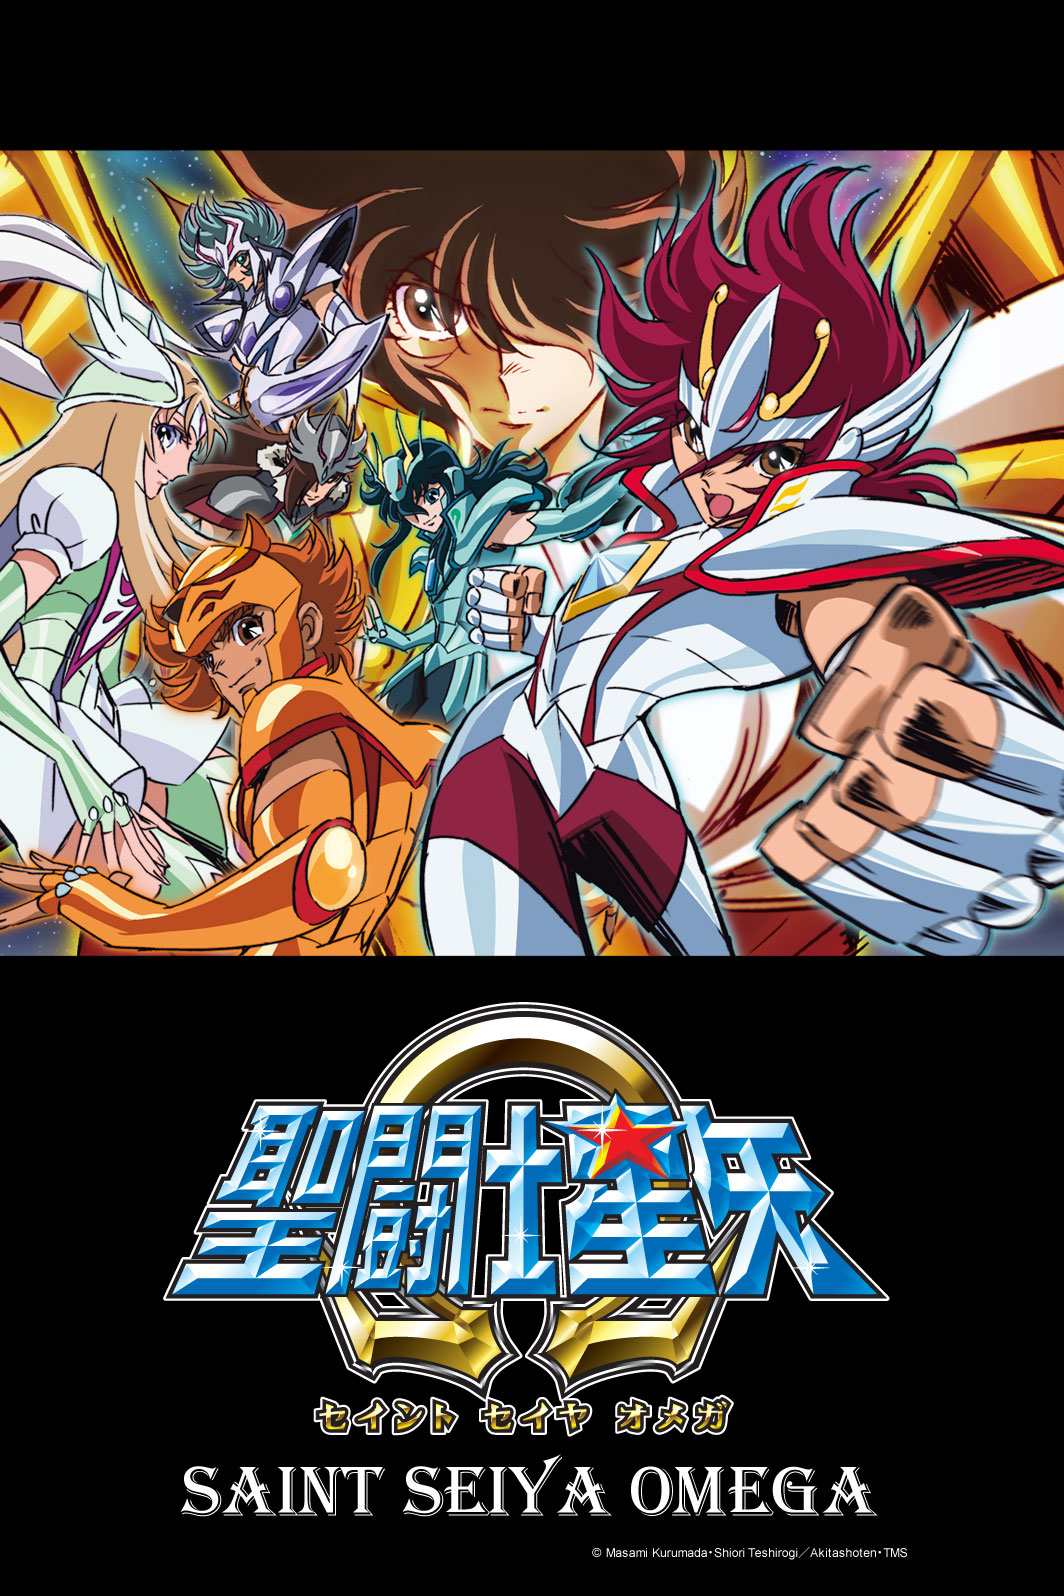 Saint Seiya Omega - Watch on Crunchyroll